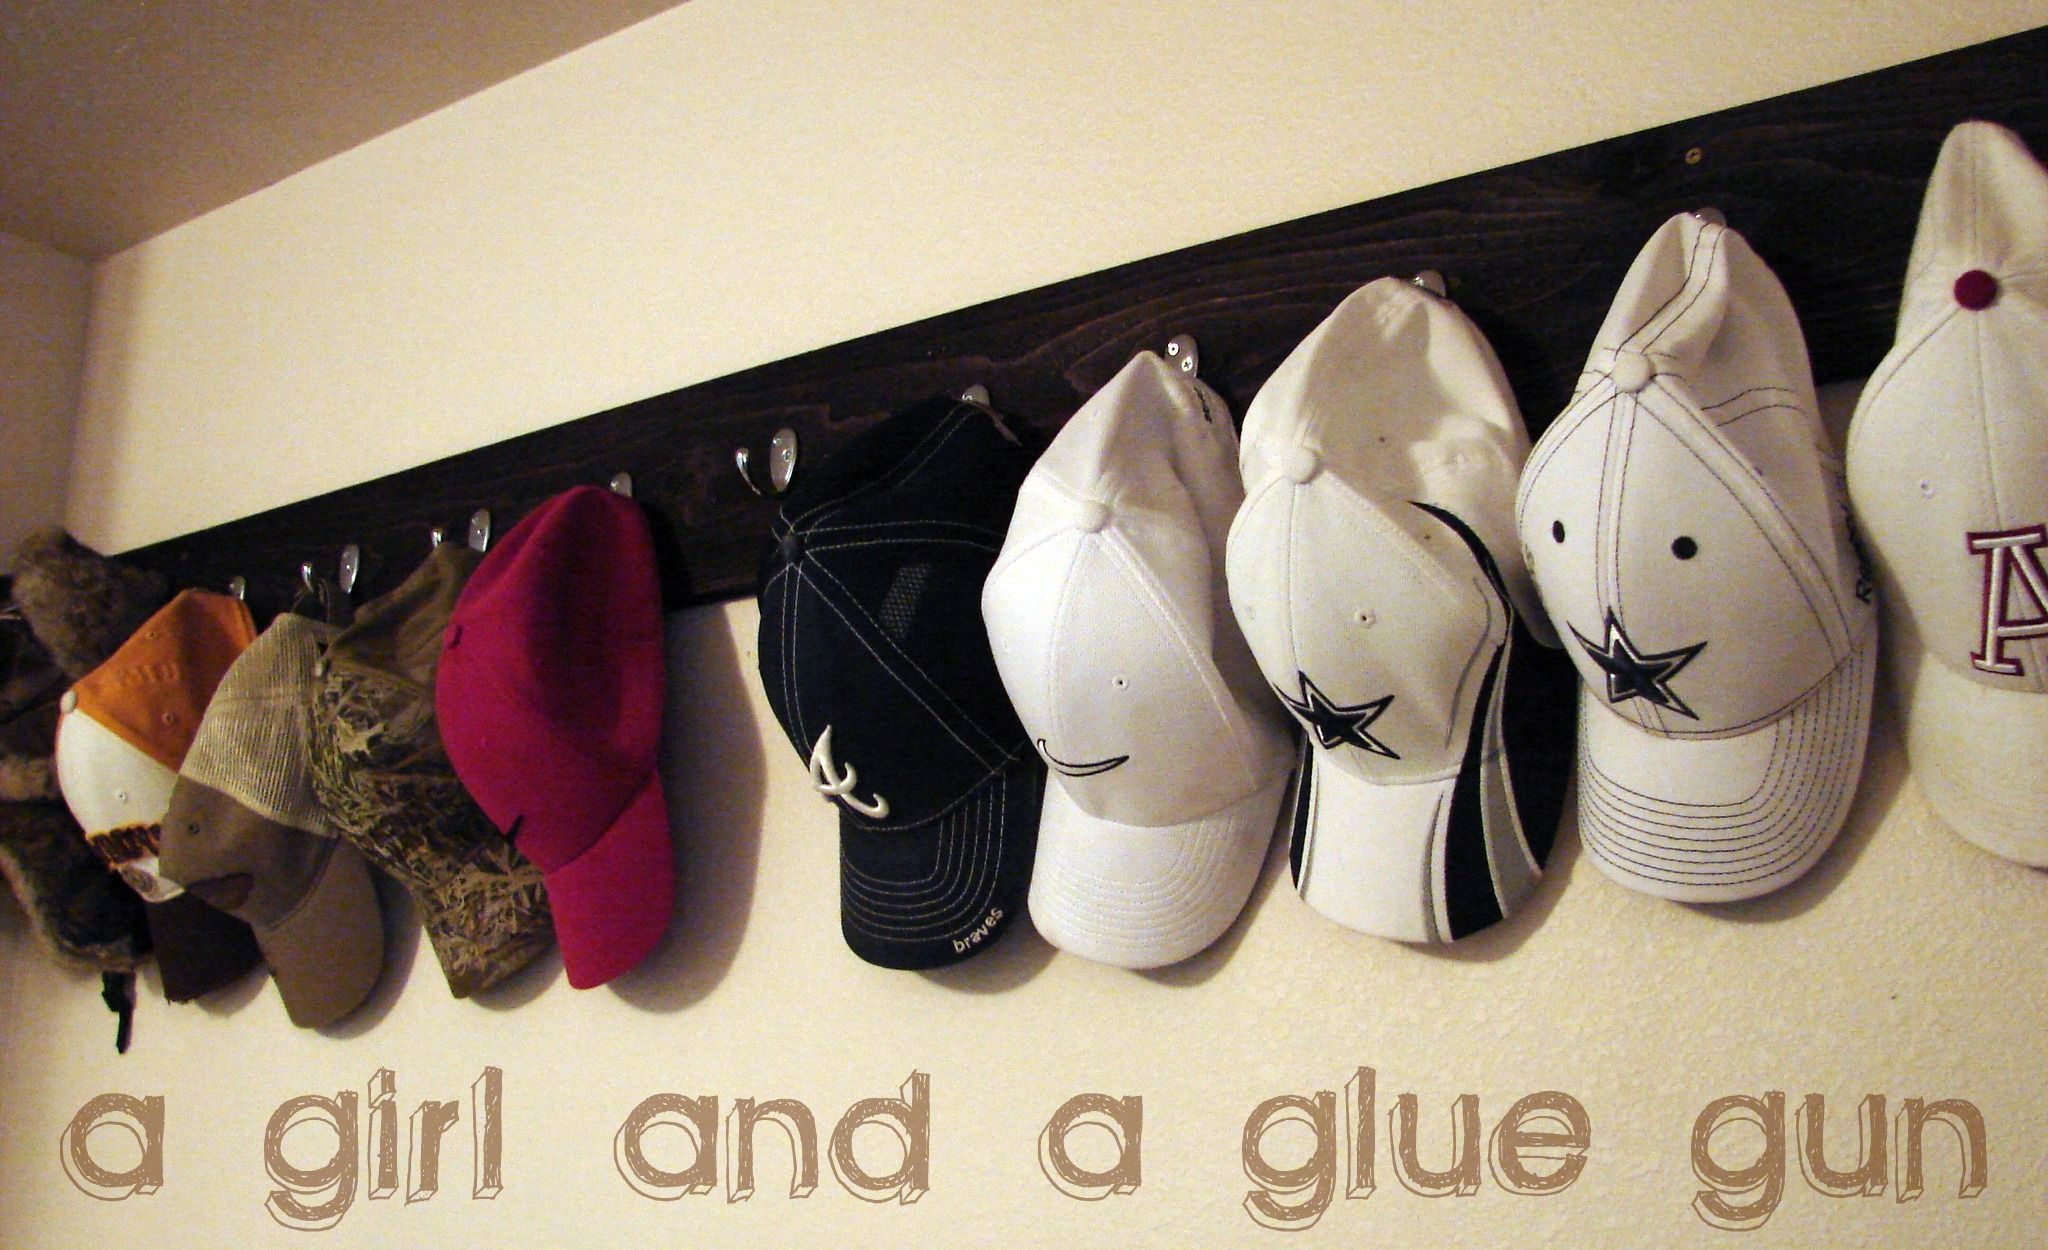 hat rack - Creative Hat Racks